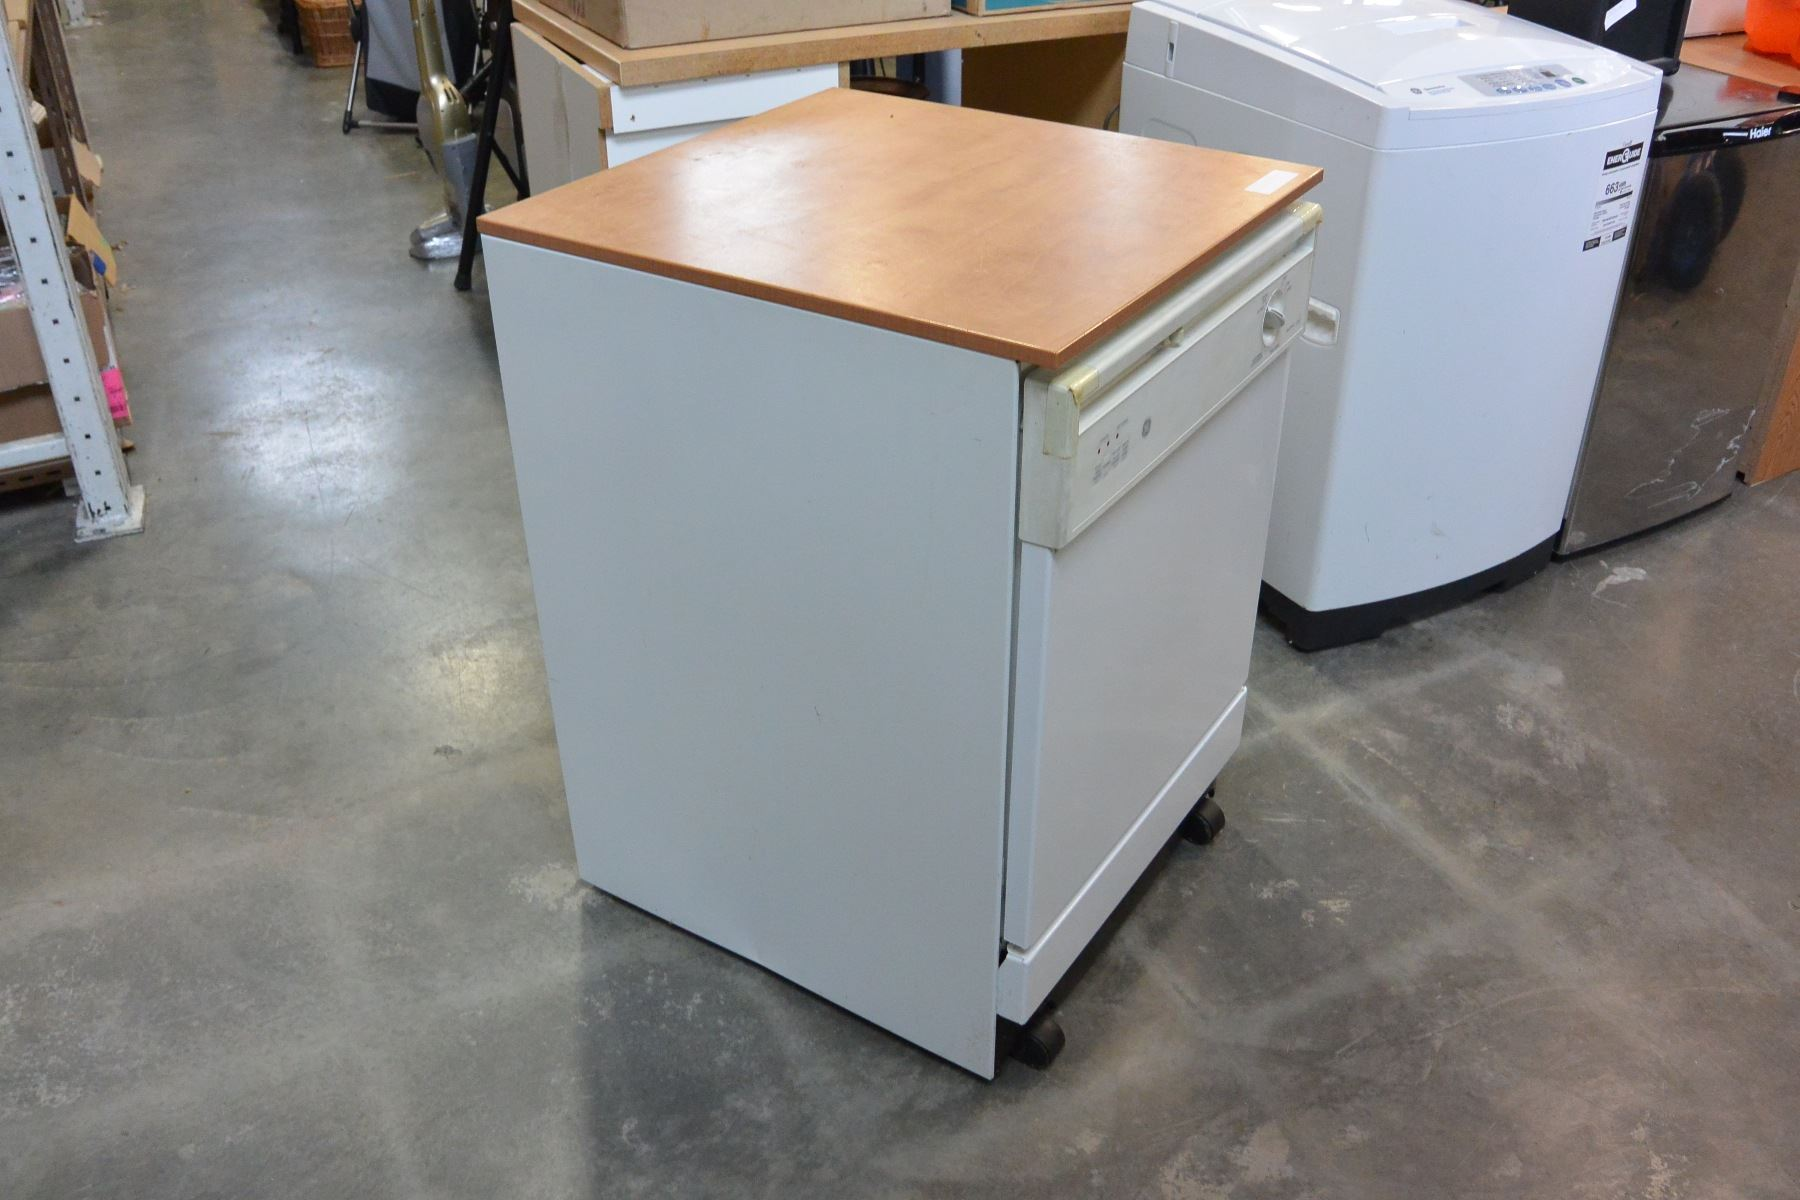 Image 2 Ge Portable Dishwasher Working With Butcher Block Top